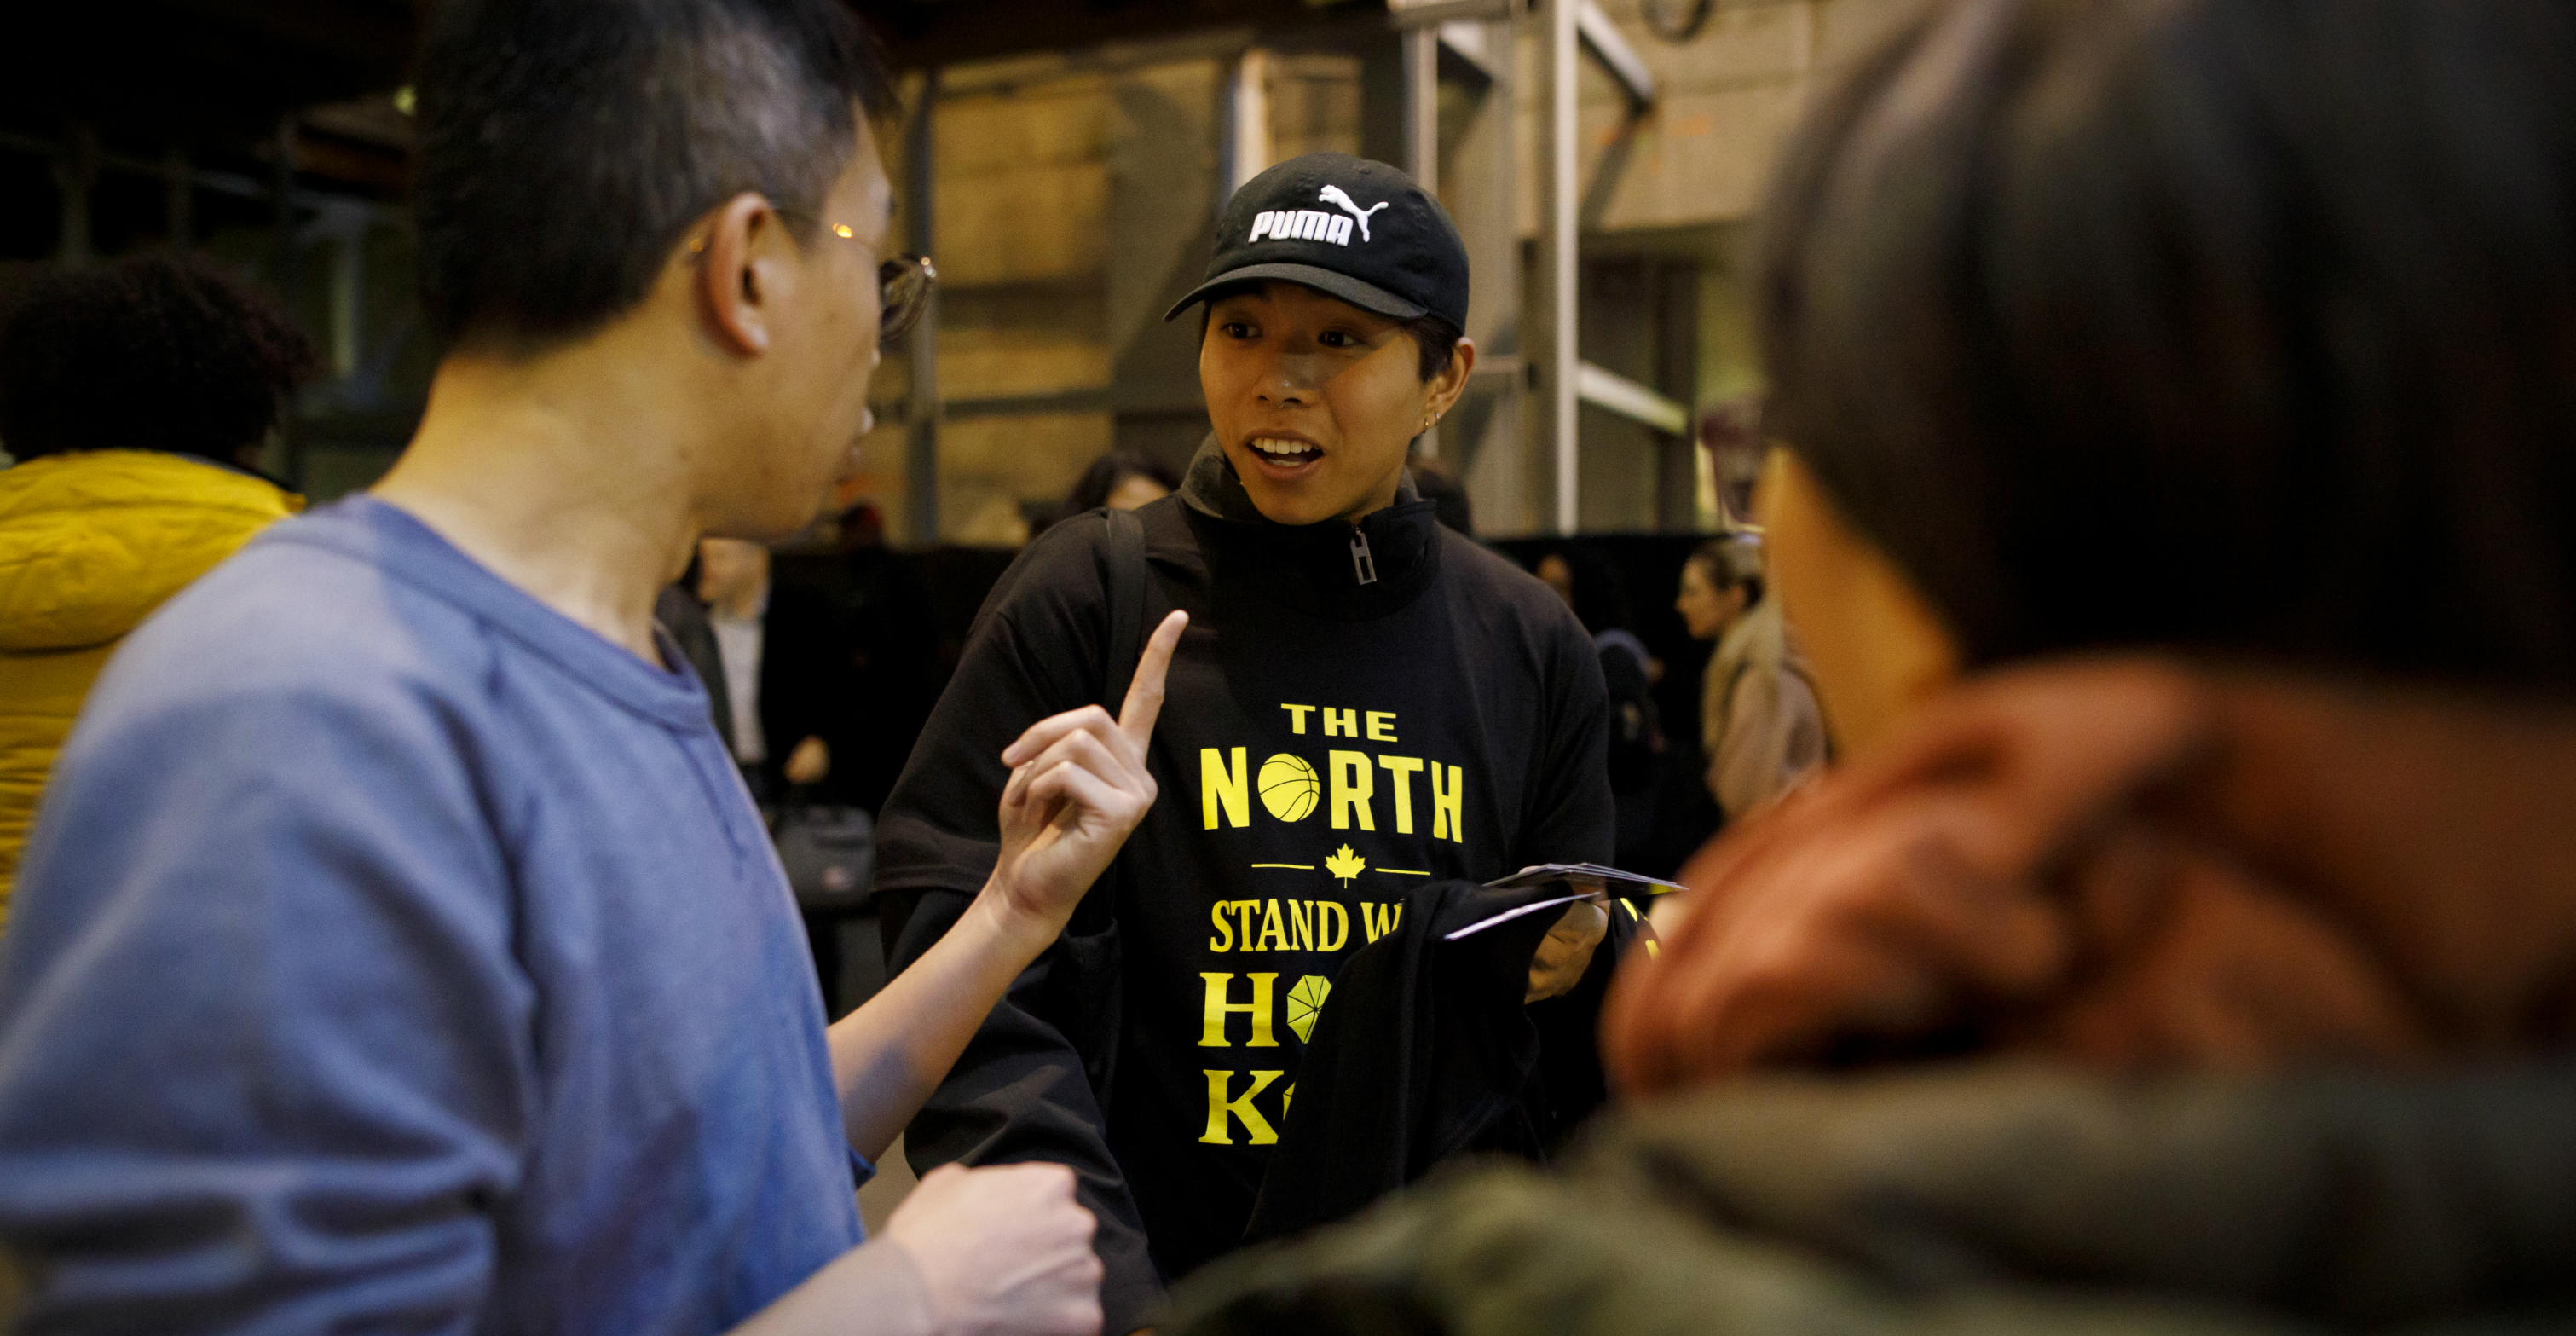 A Hong Kong pro-democracy supporter argues with a passerby as he hands out t-shirts outside the Scotiabank Arena in Toronto on Tuesday. Photo: Getty Images North America/AFP